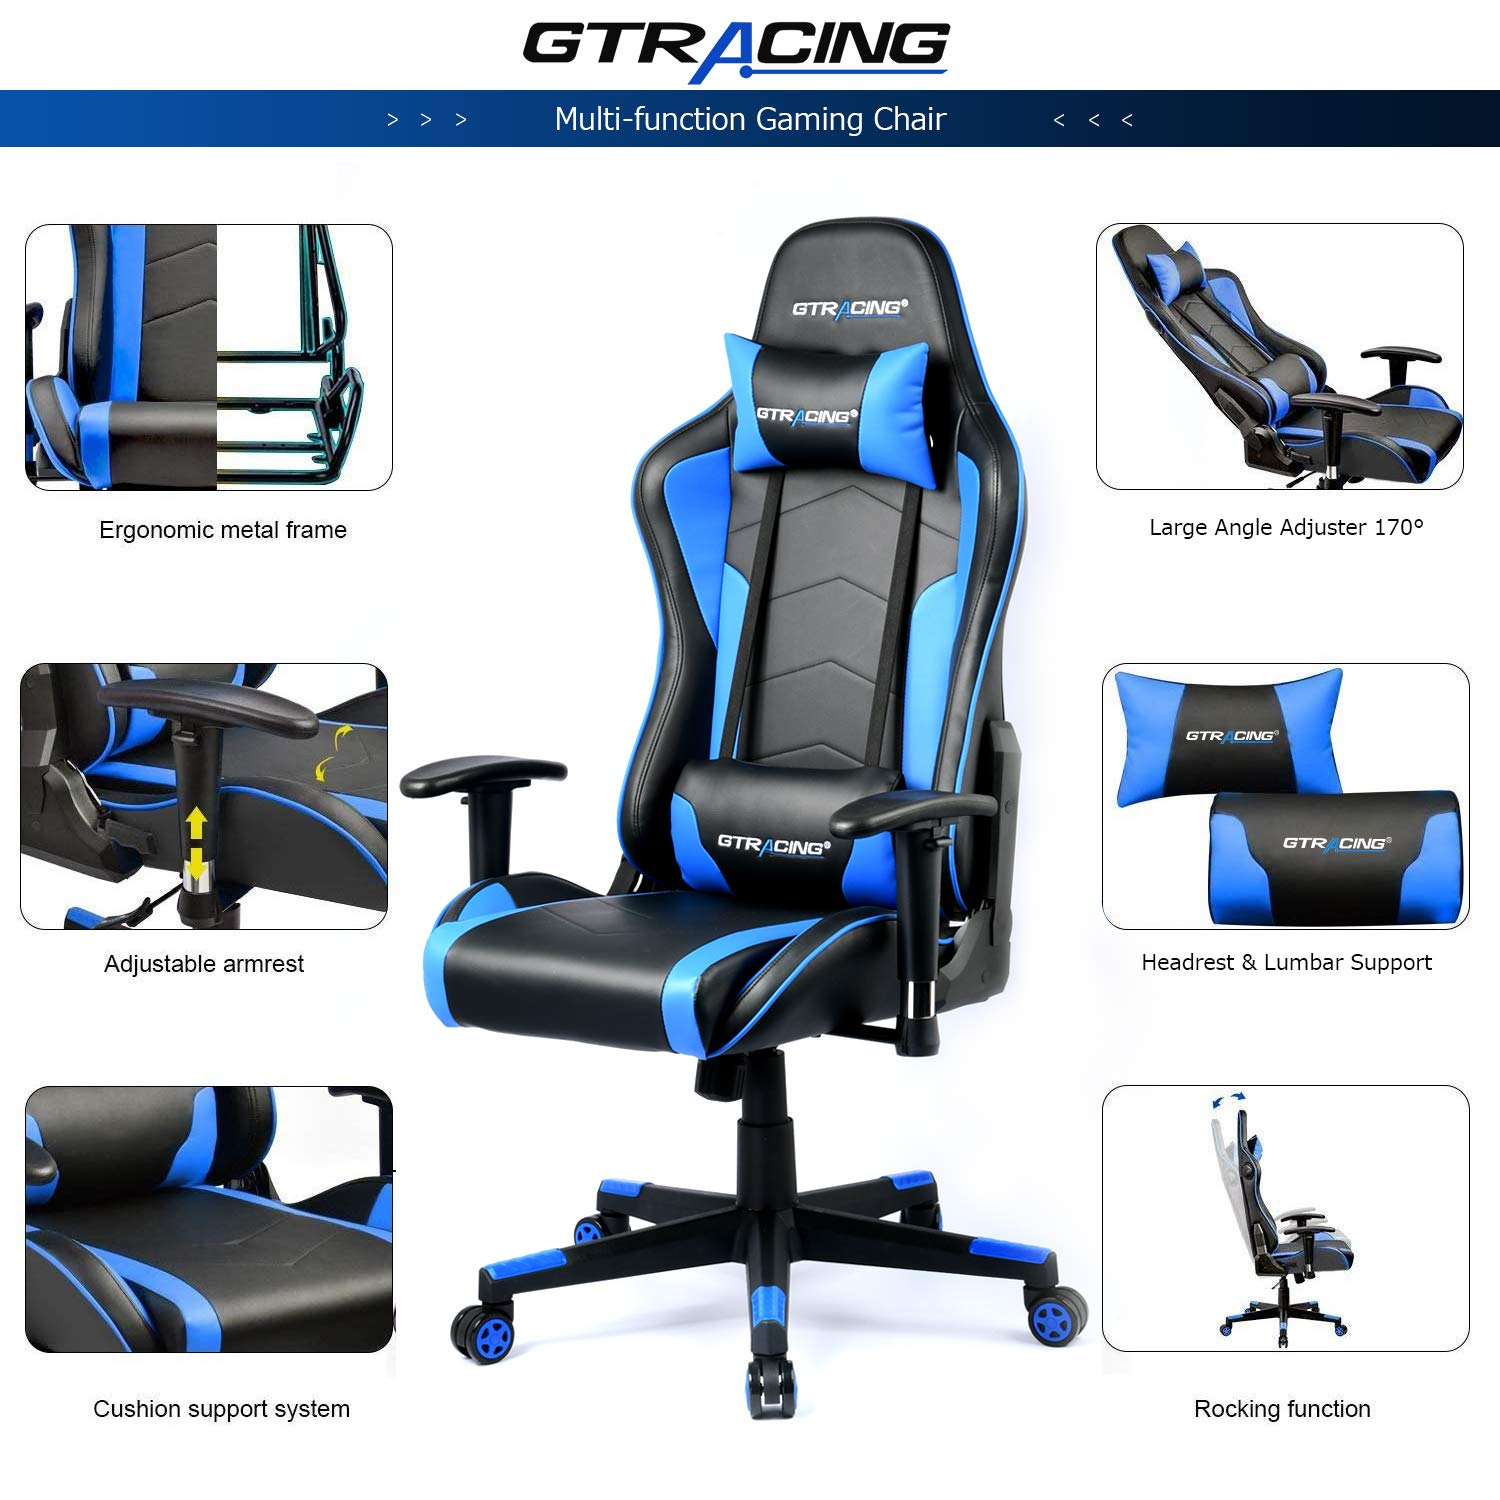 GTRACING Gaming Chair with Bluetooth Speakers